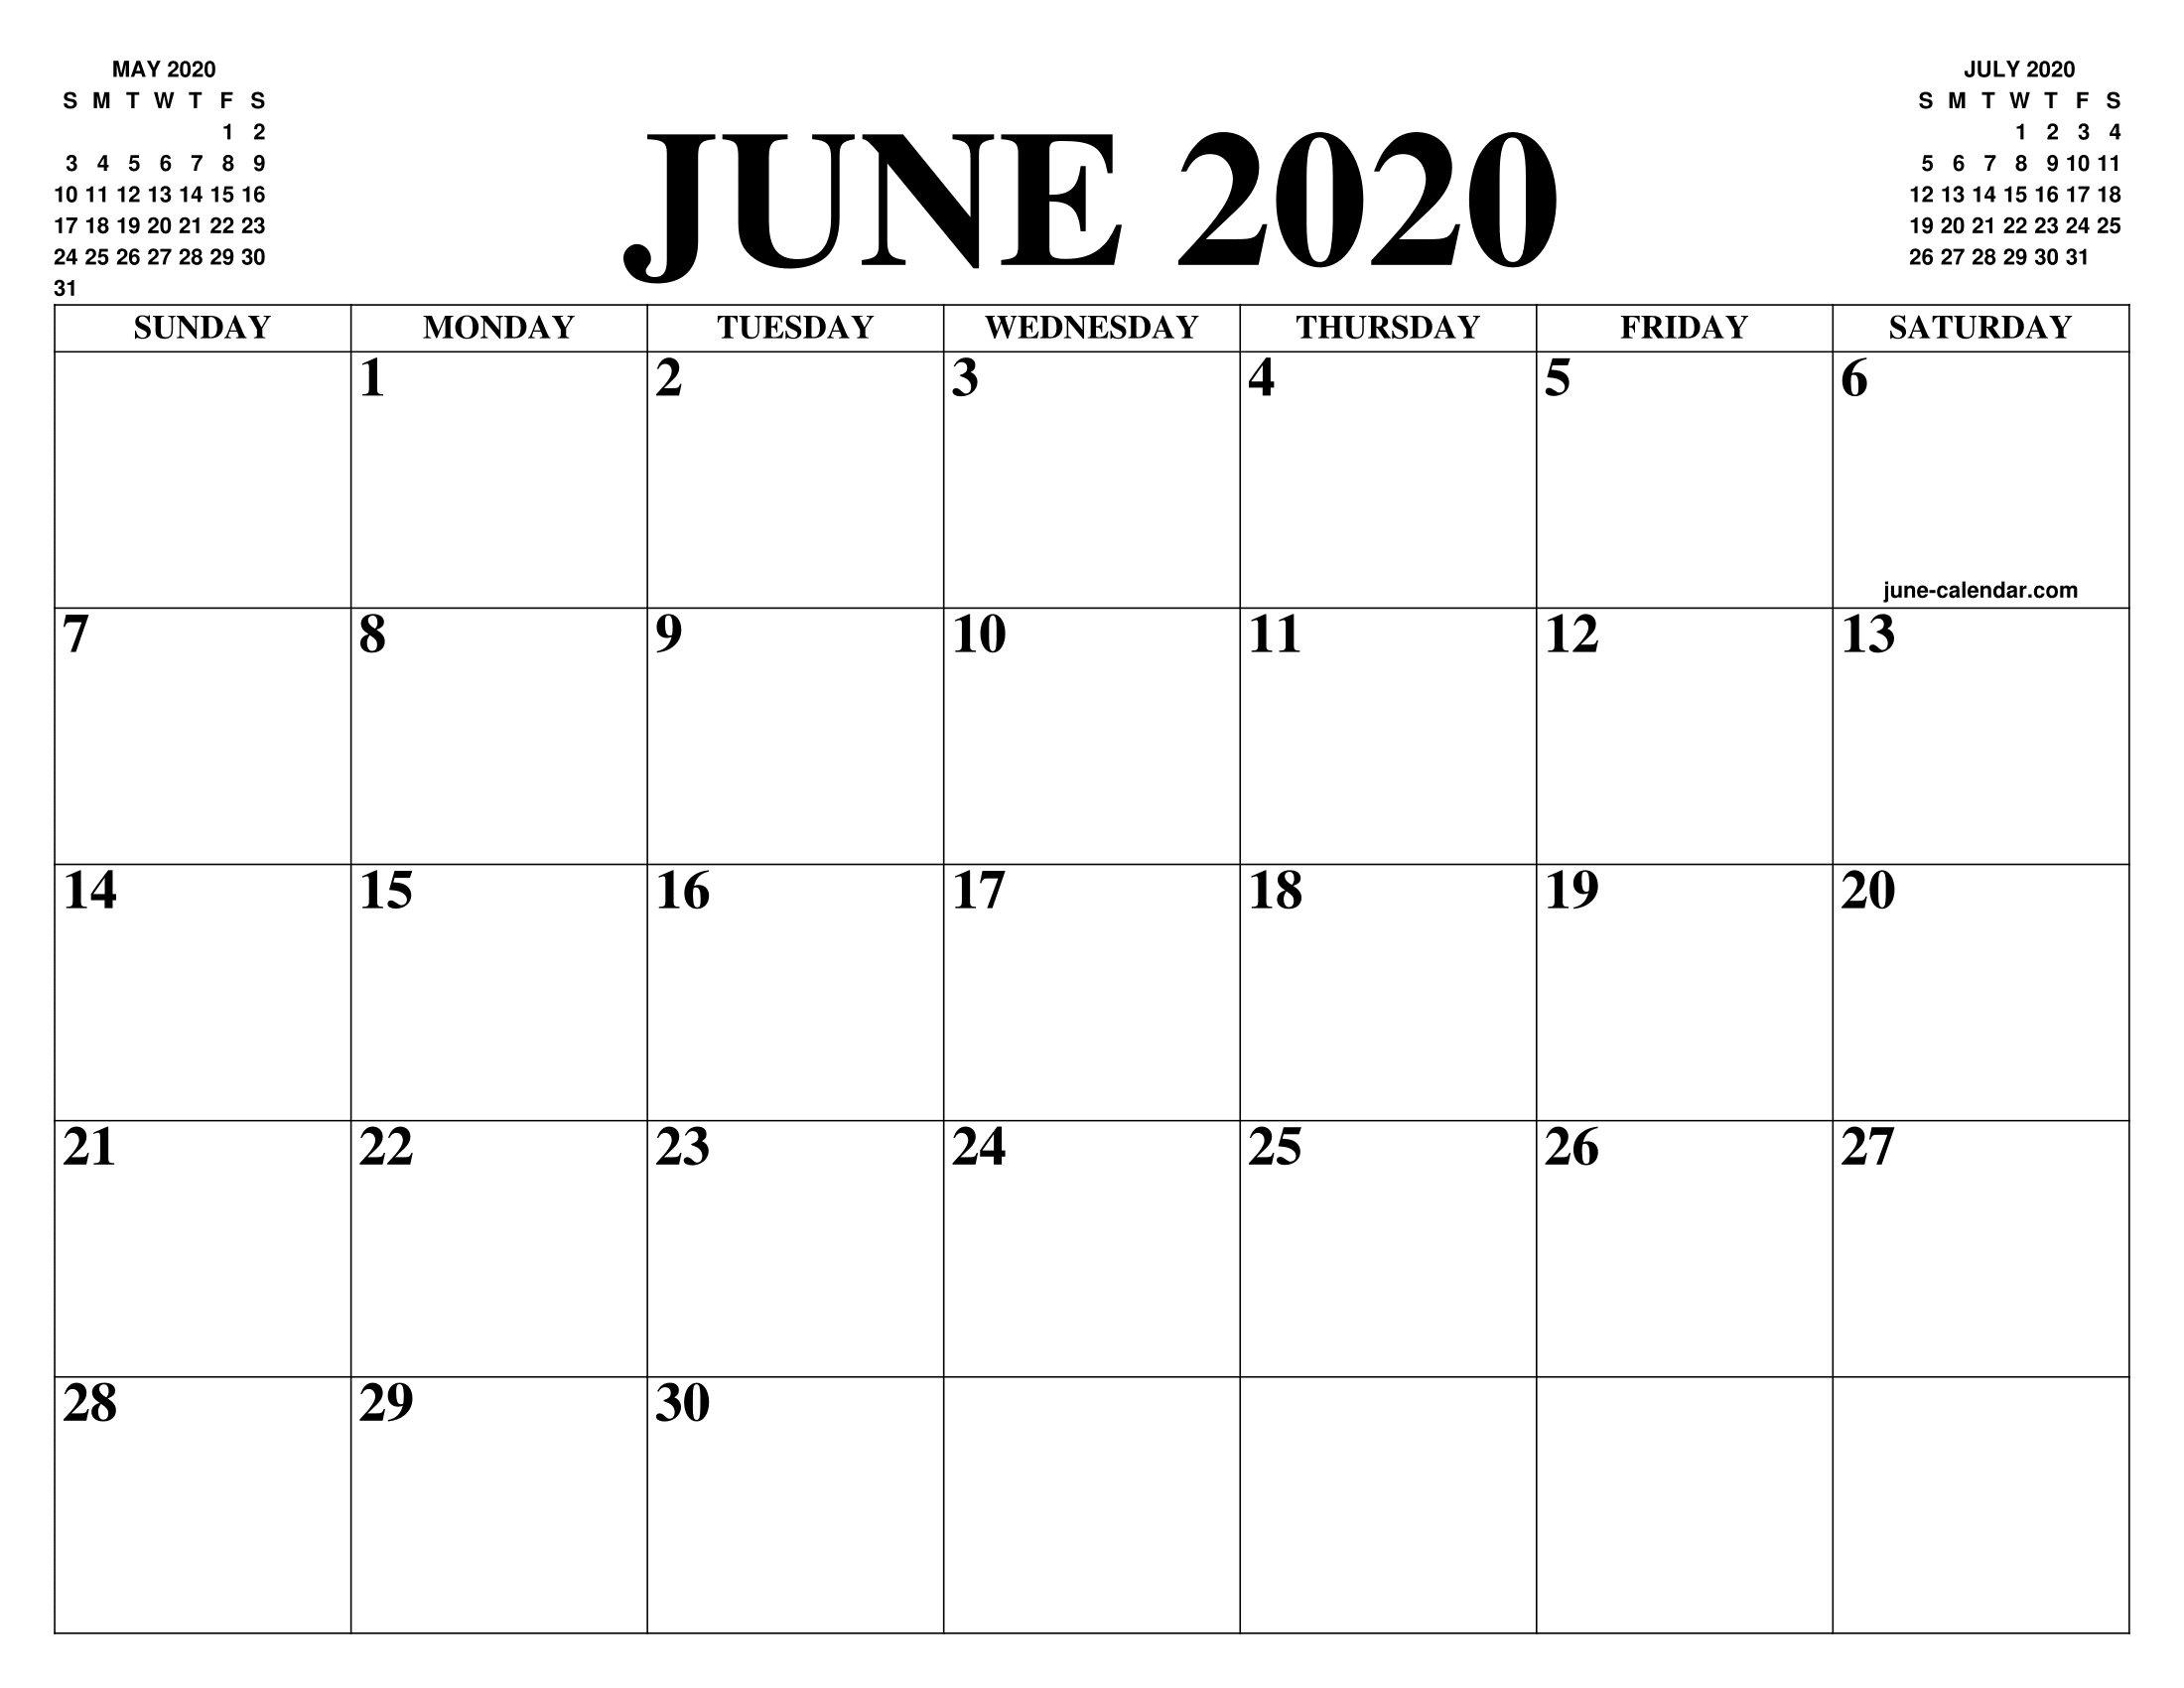 Calendar June 2020.June 2020 Calendar Of The Month Free Printable June Calendar Of The